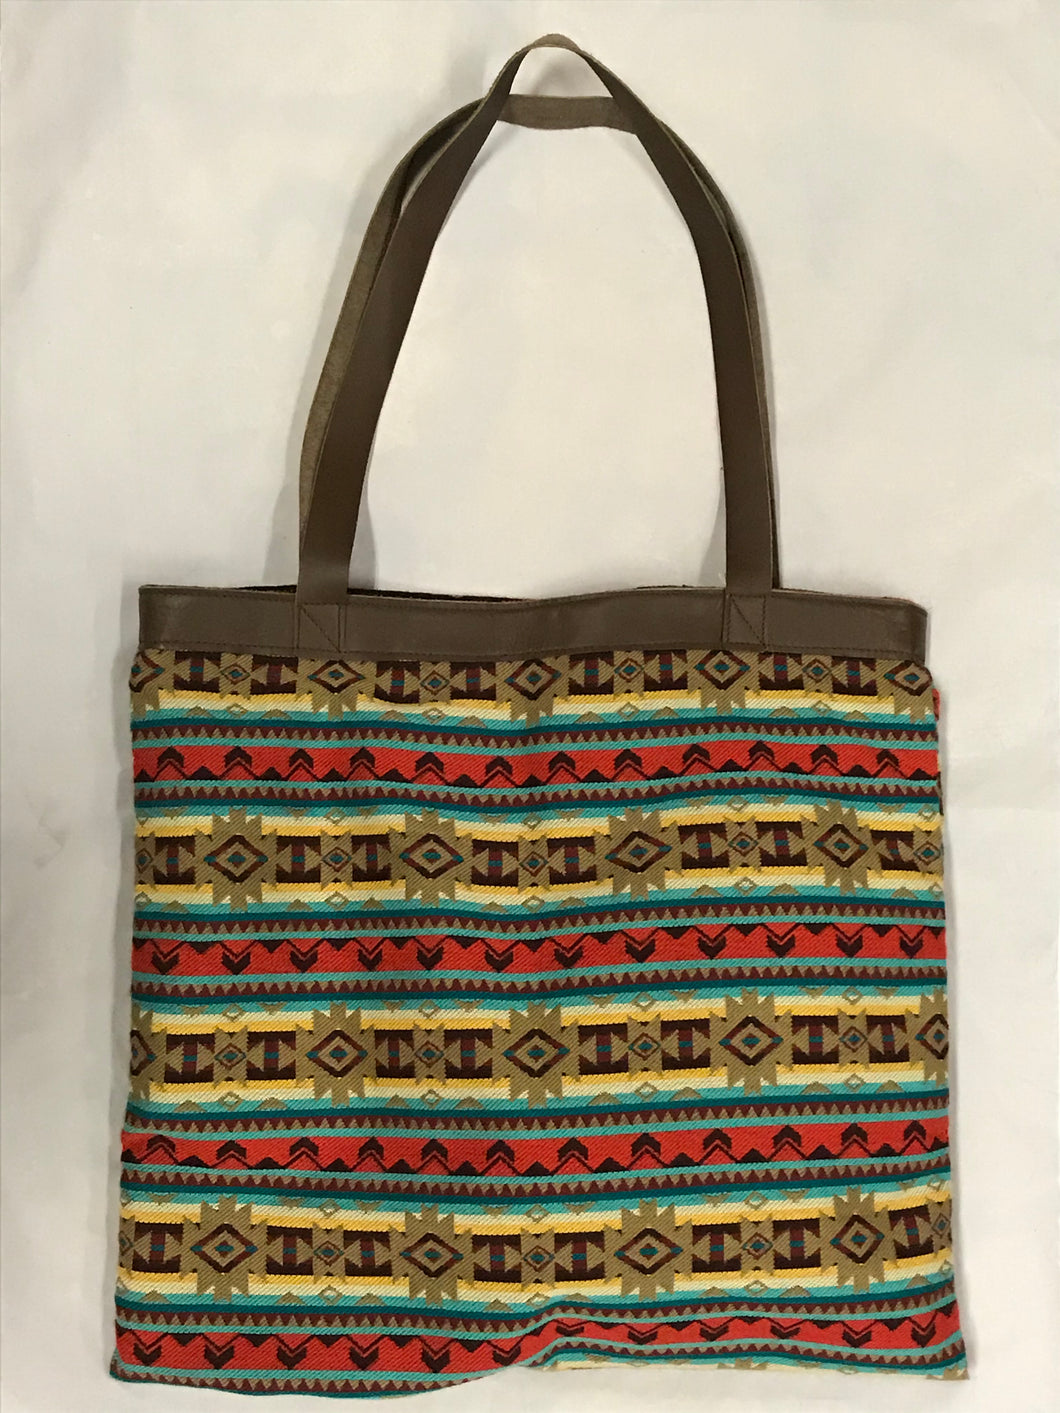 Cream, Teal, and Red Striped Woven XL Tote Bag